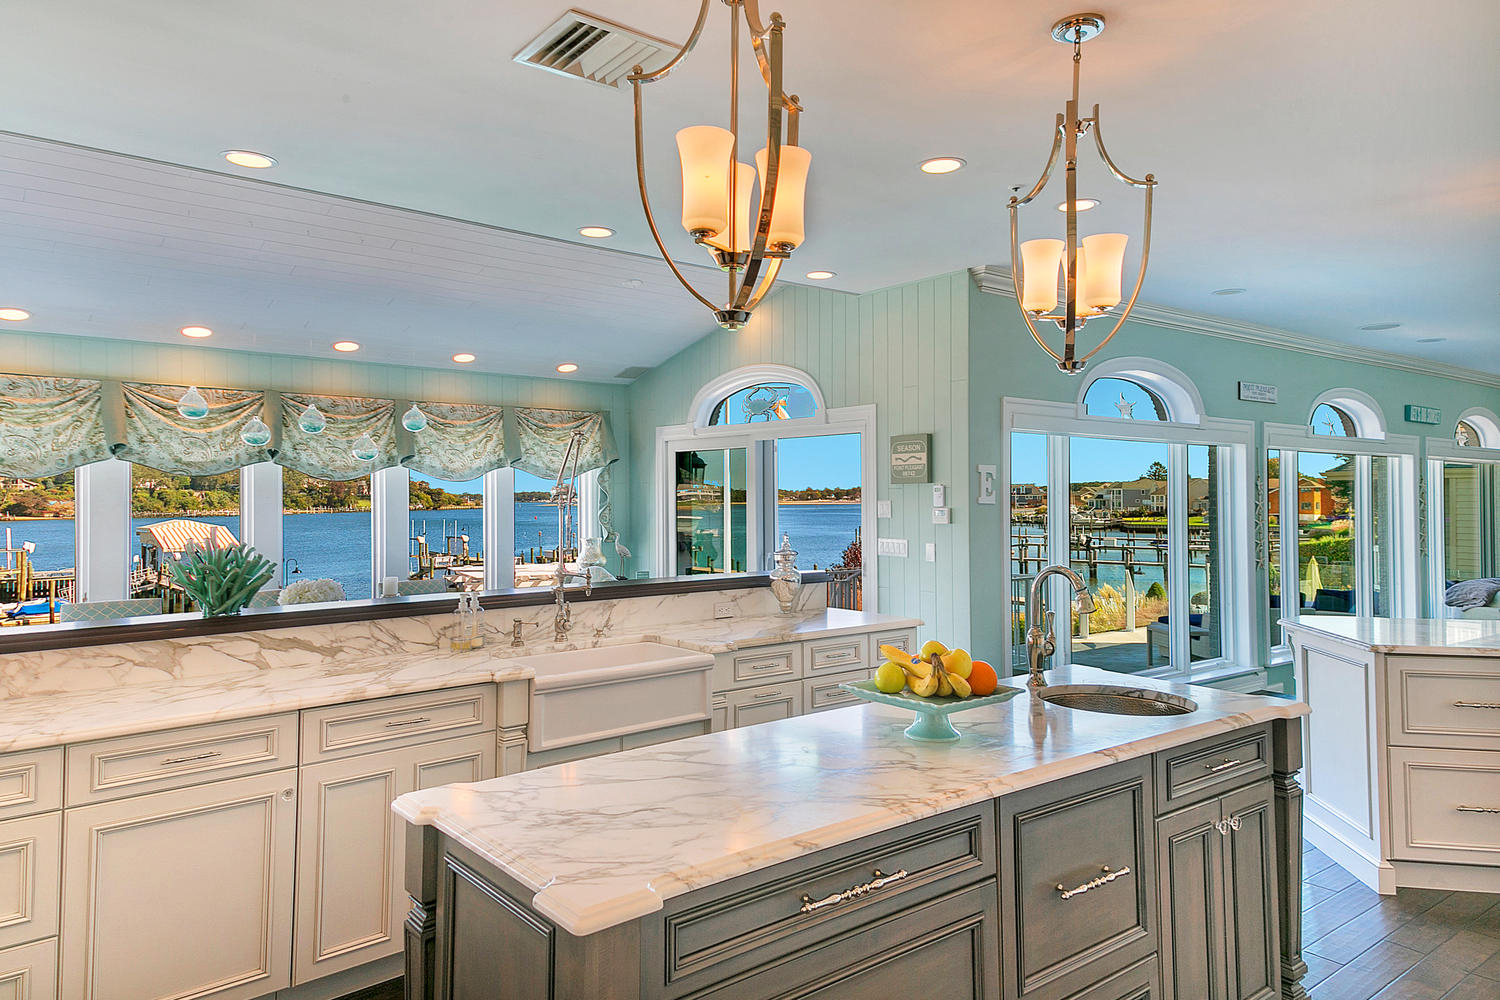 designlinekitchens kitchen cabinets nj Custom Kitchens Bathrooms and more at Design Line Kitchens in Sea Girt NJ